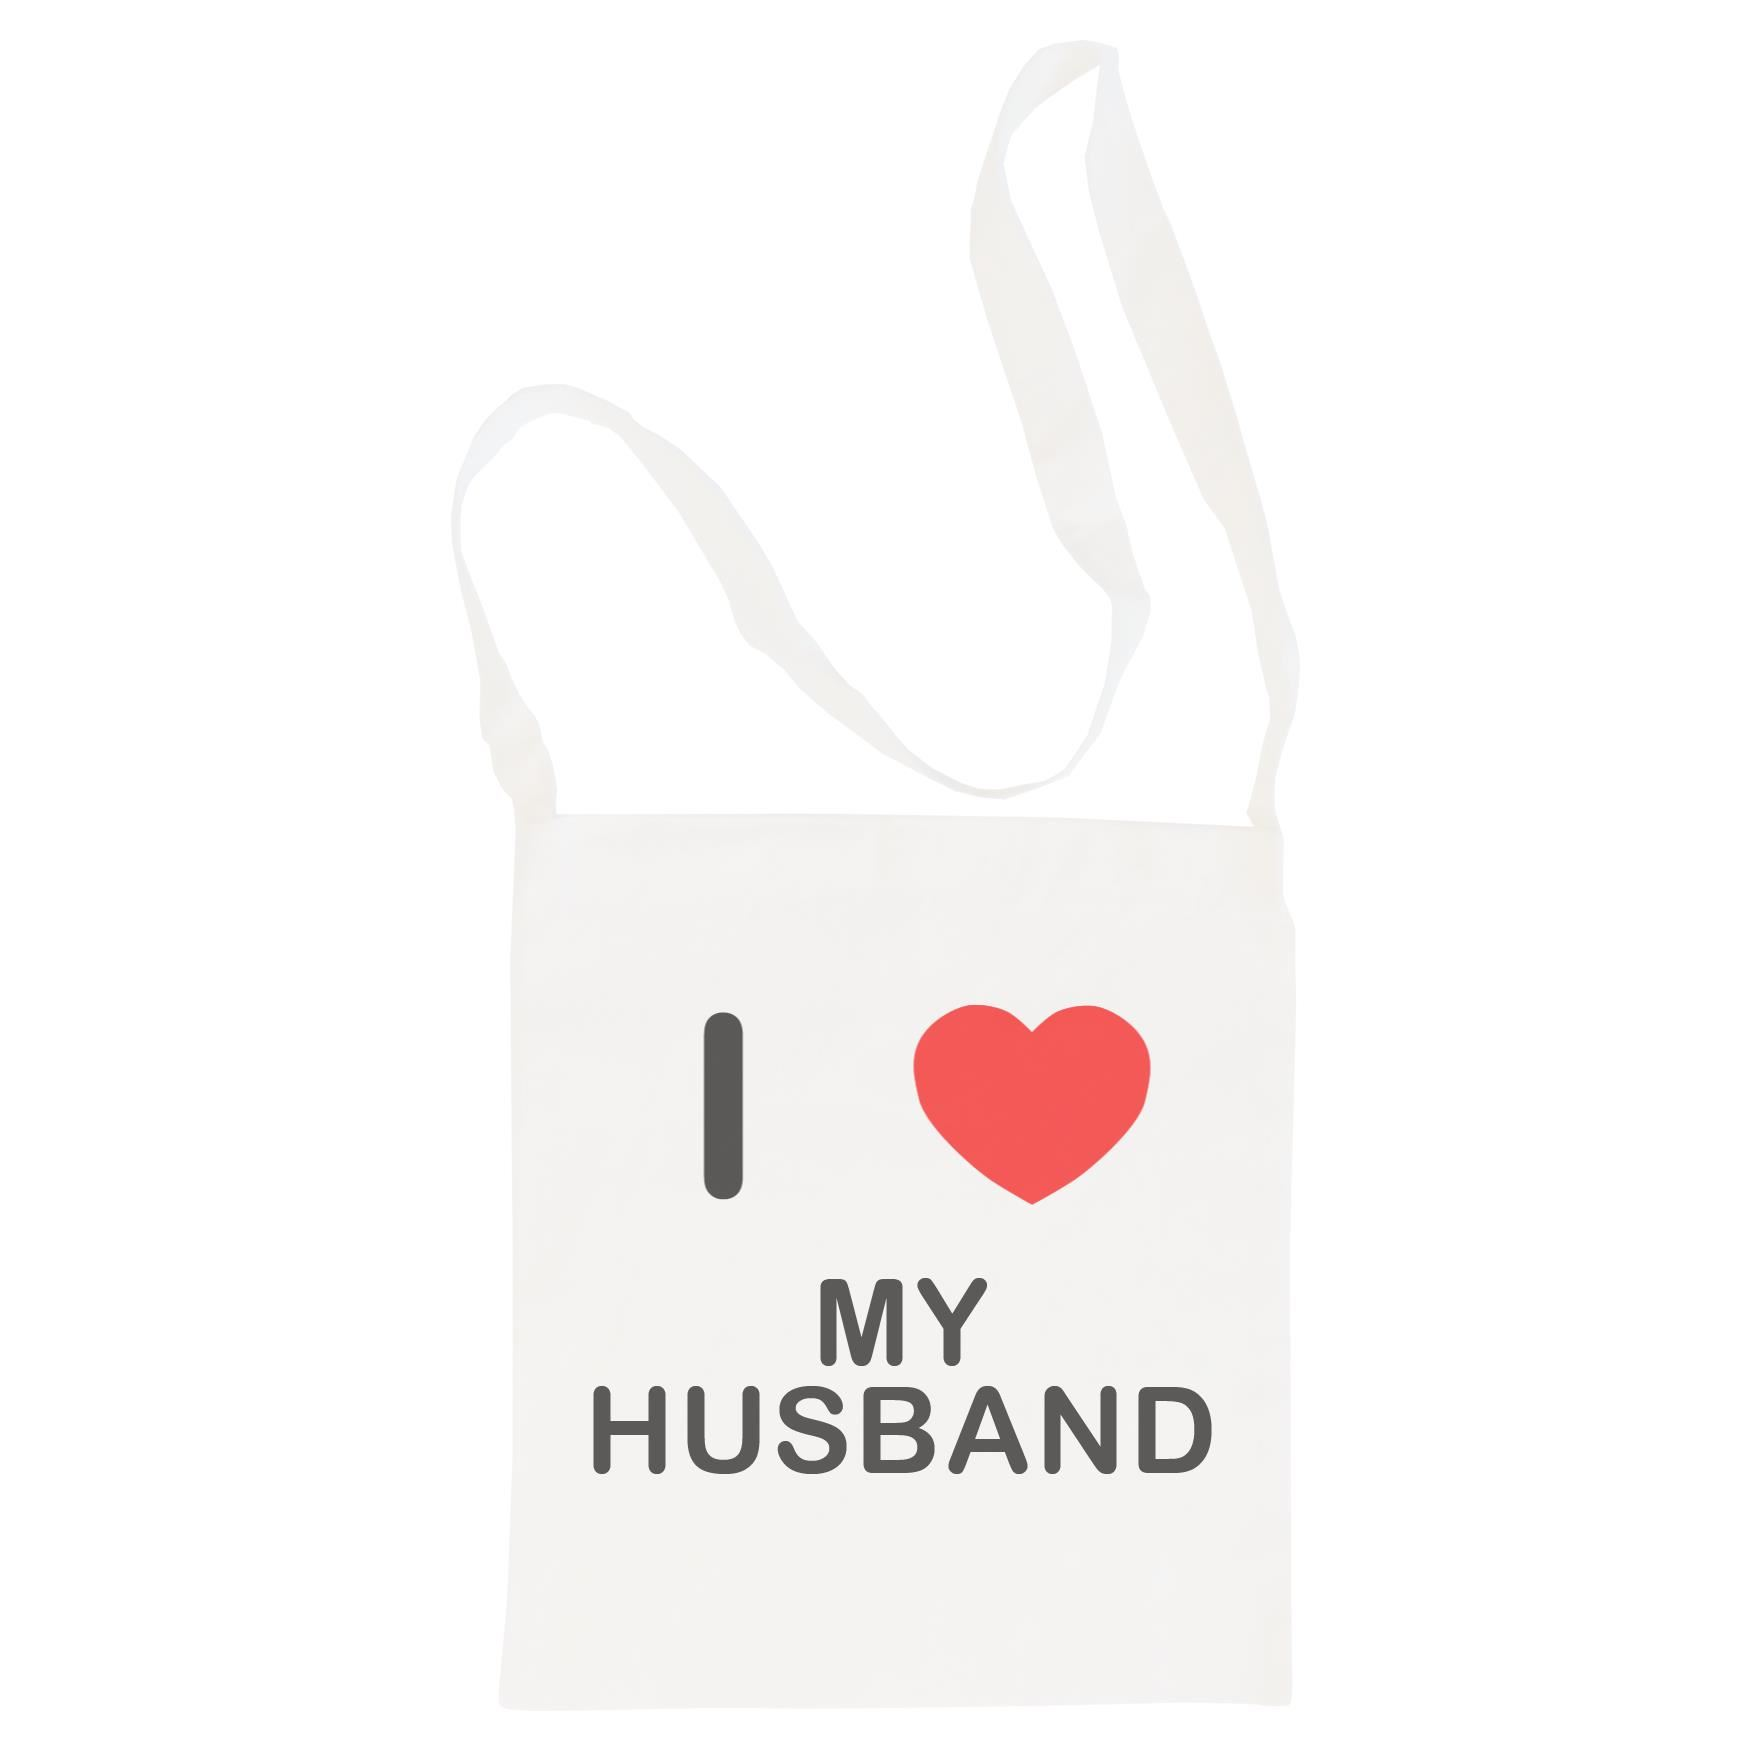 I Love My Husband - Cotton Bag | Size choice Tote, Shopper or Sling